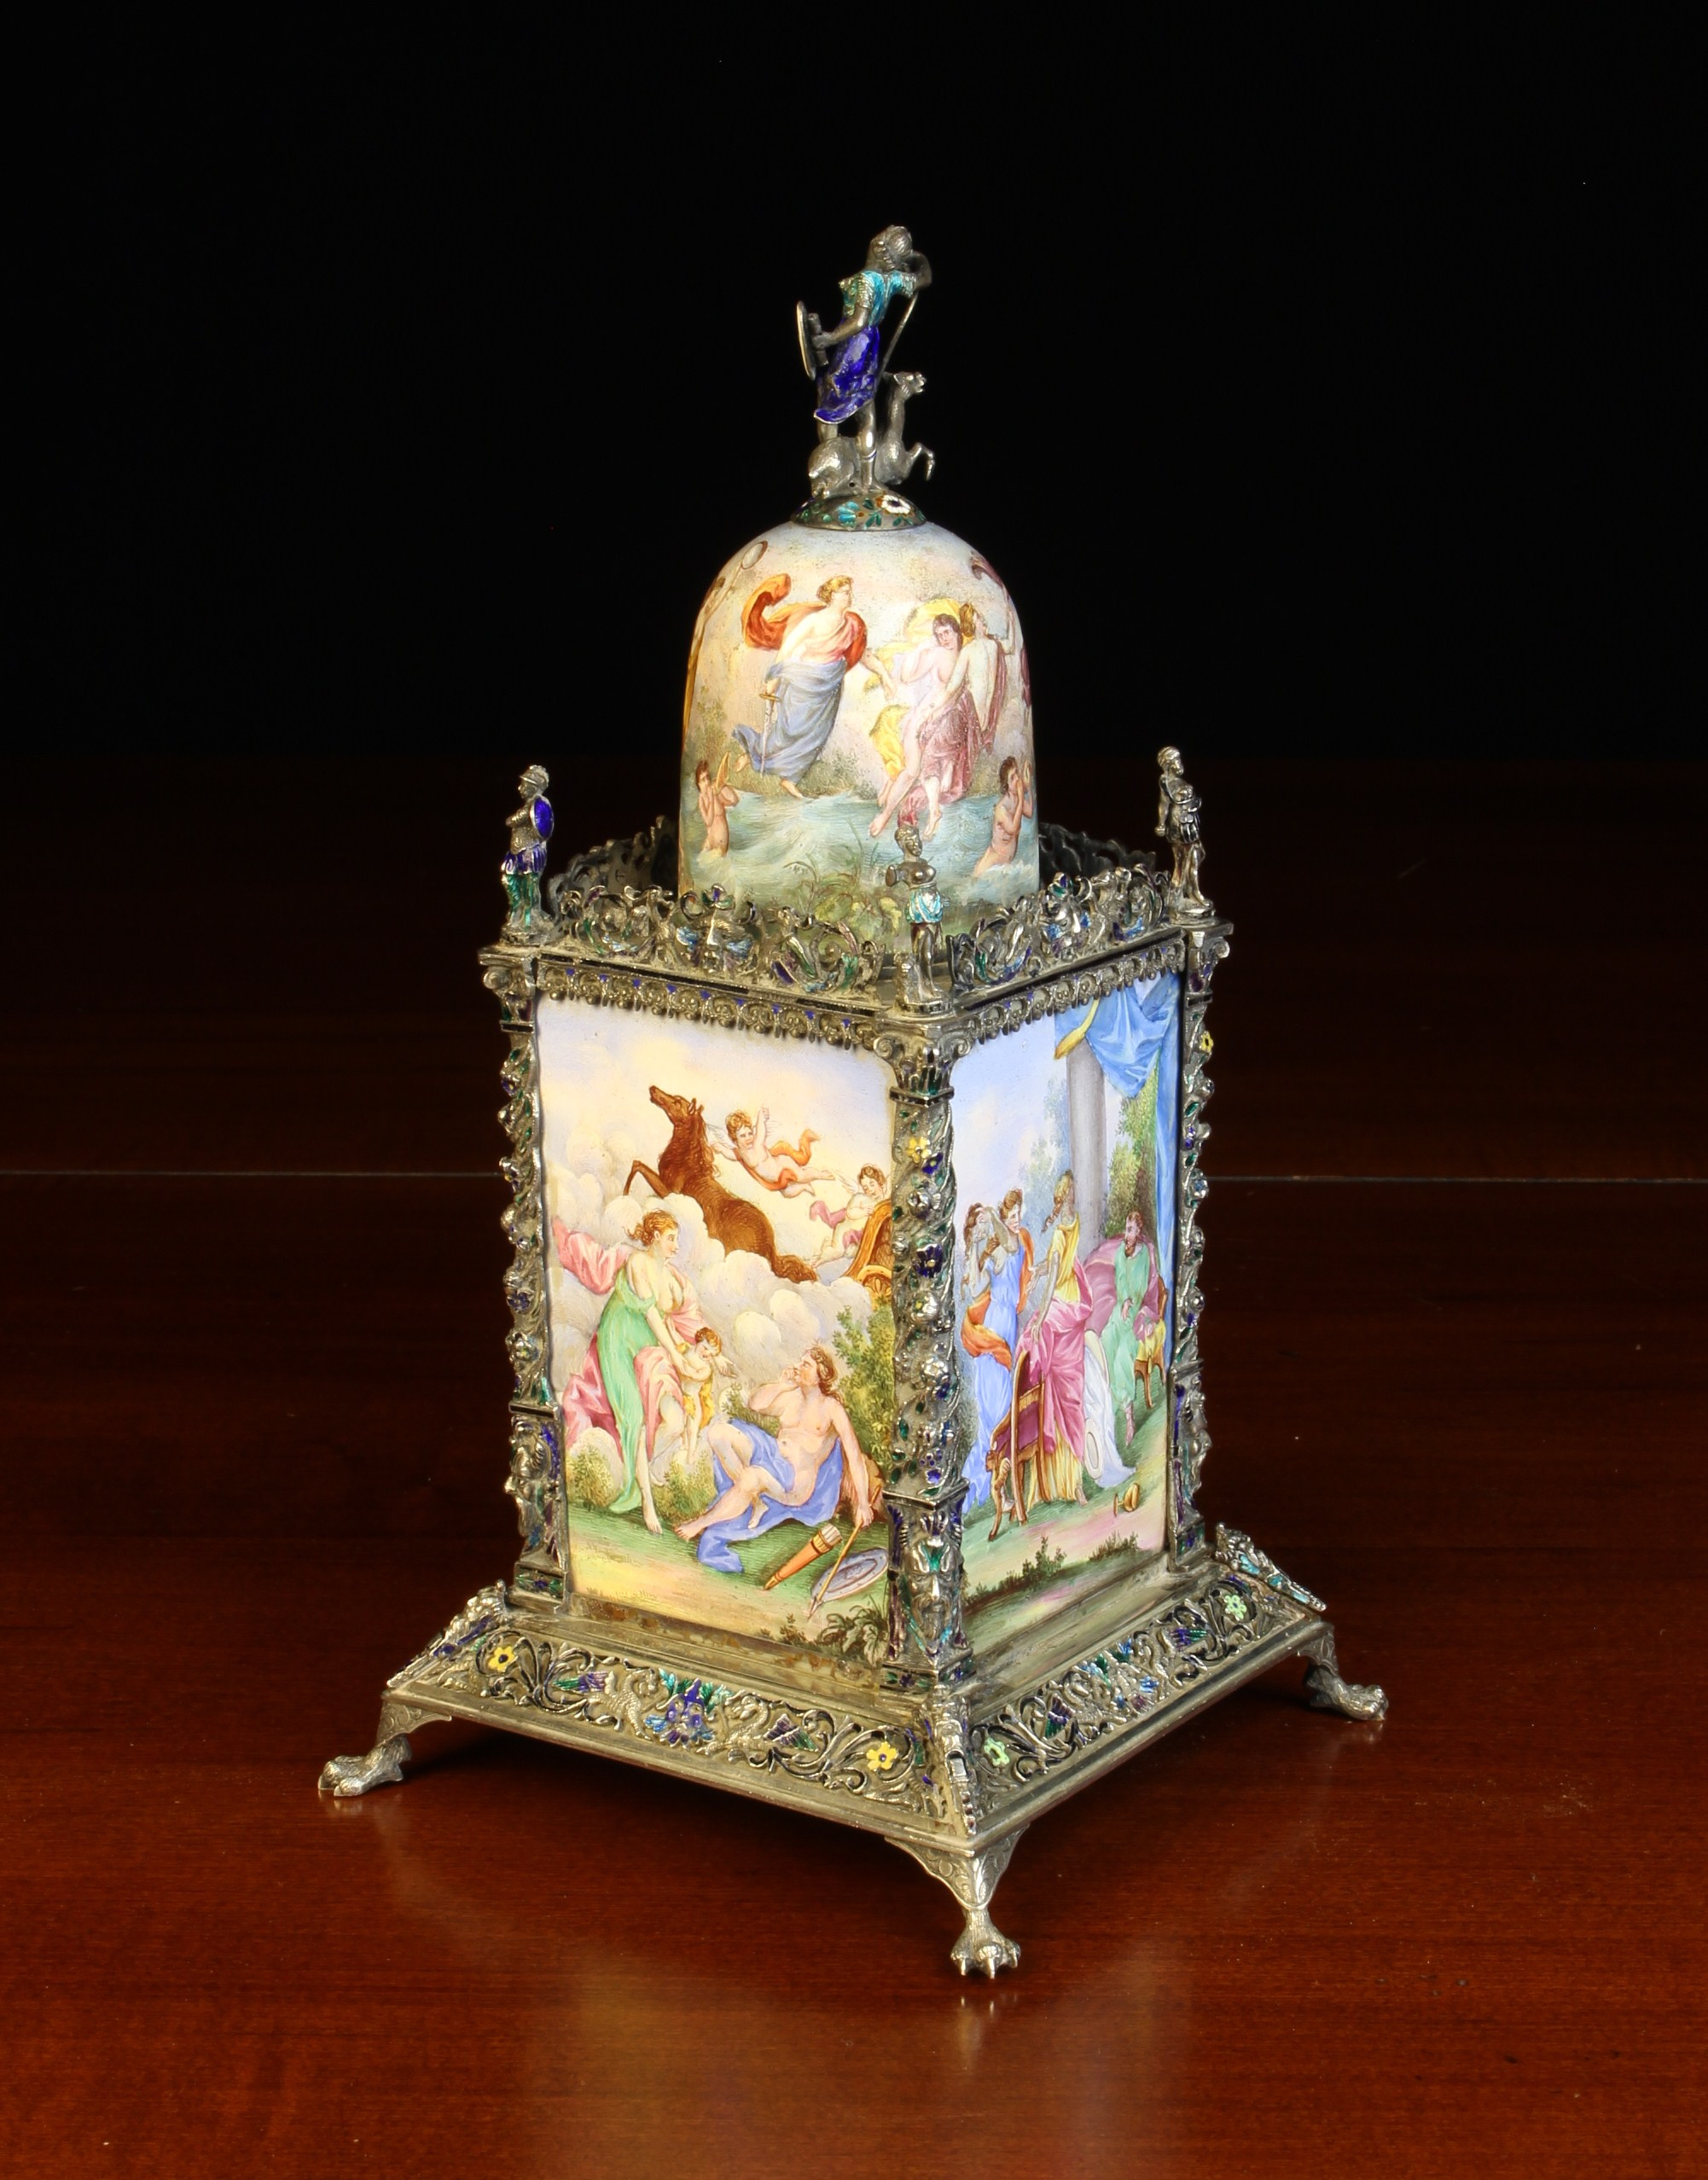 A Small & Highly Decorative Vienna Enamel Table Clock. - Image 3 of 4